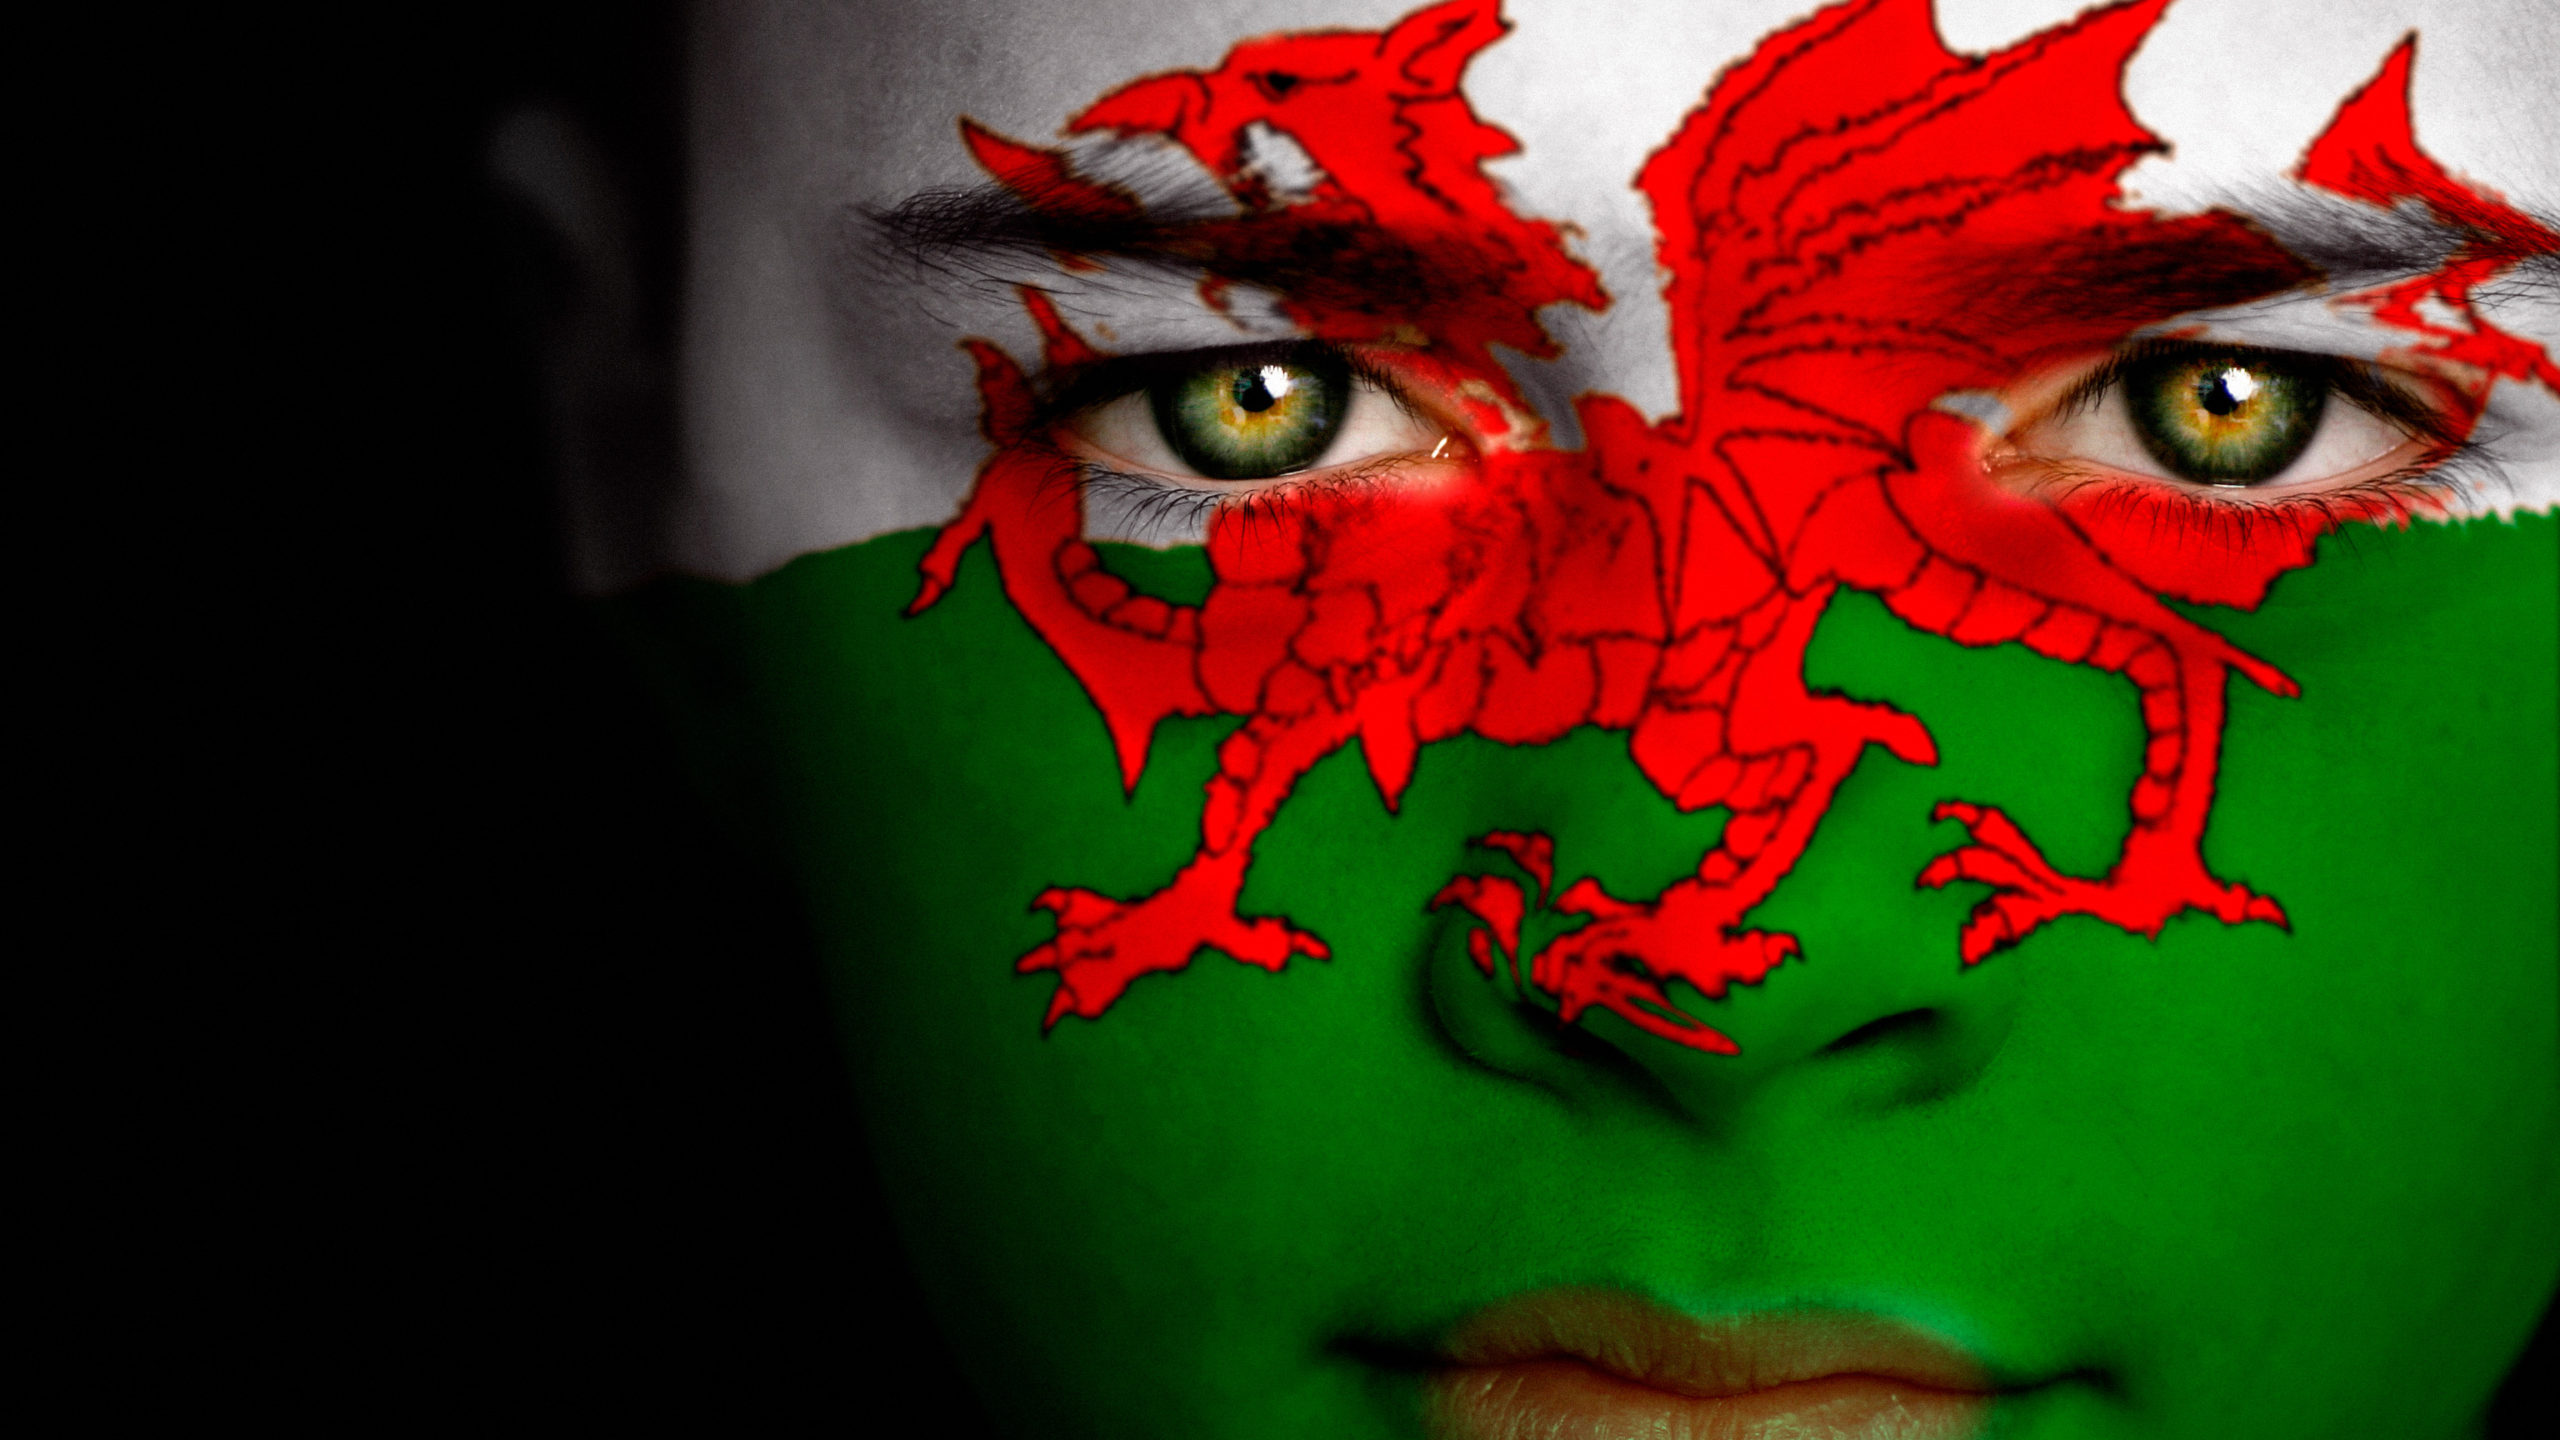 Person with Wales flag painted on face